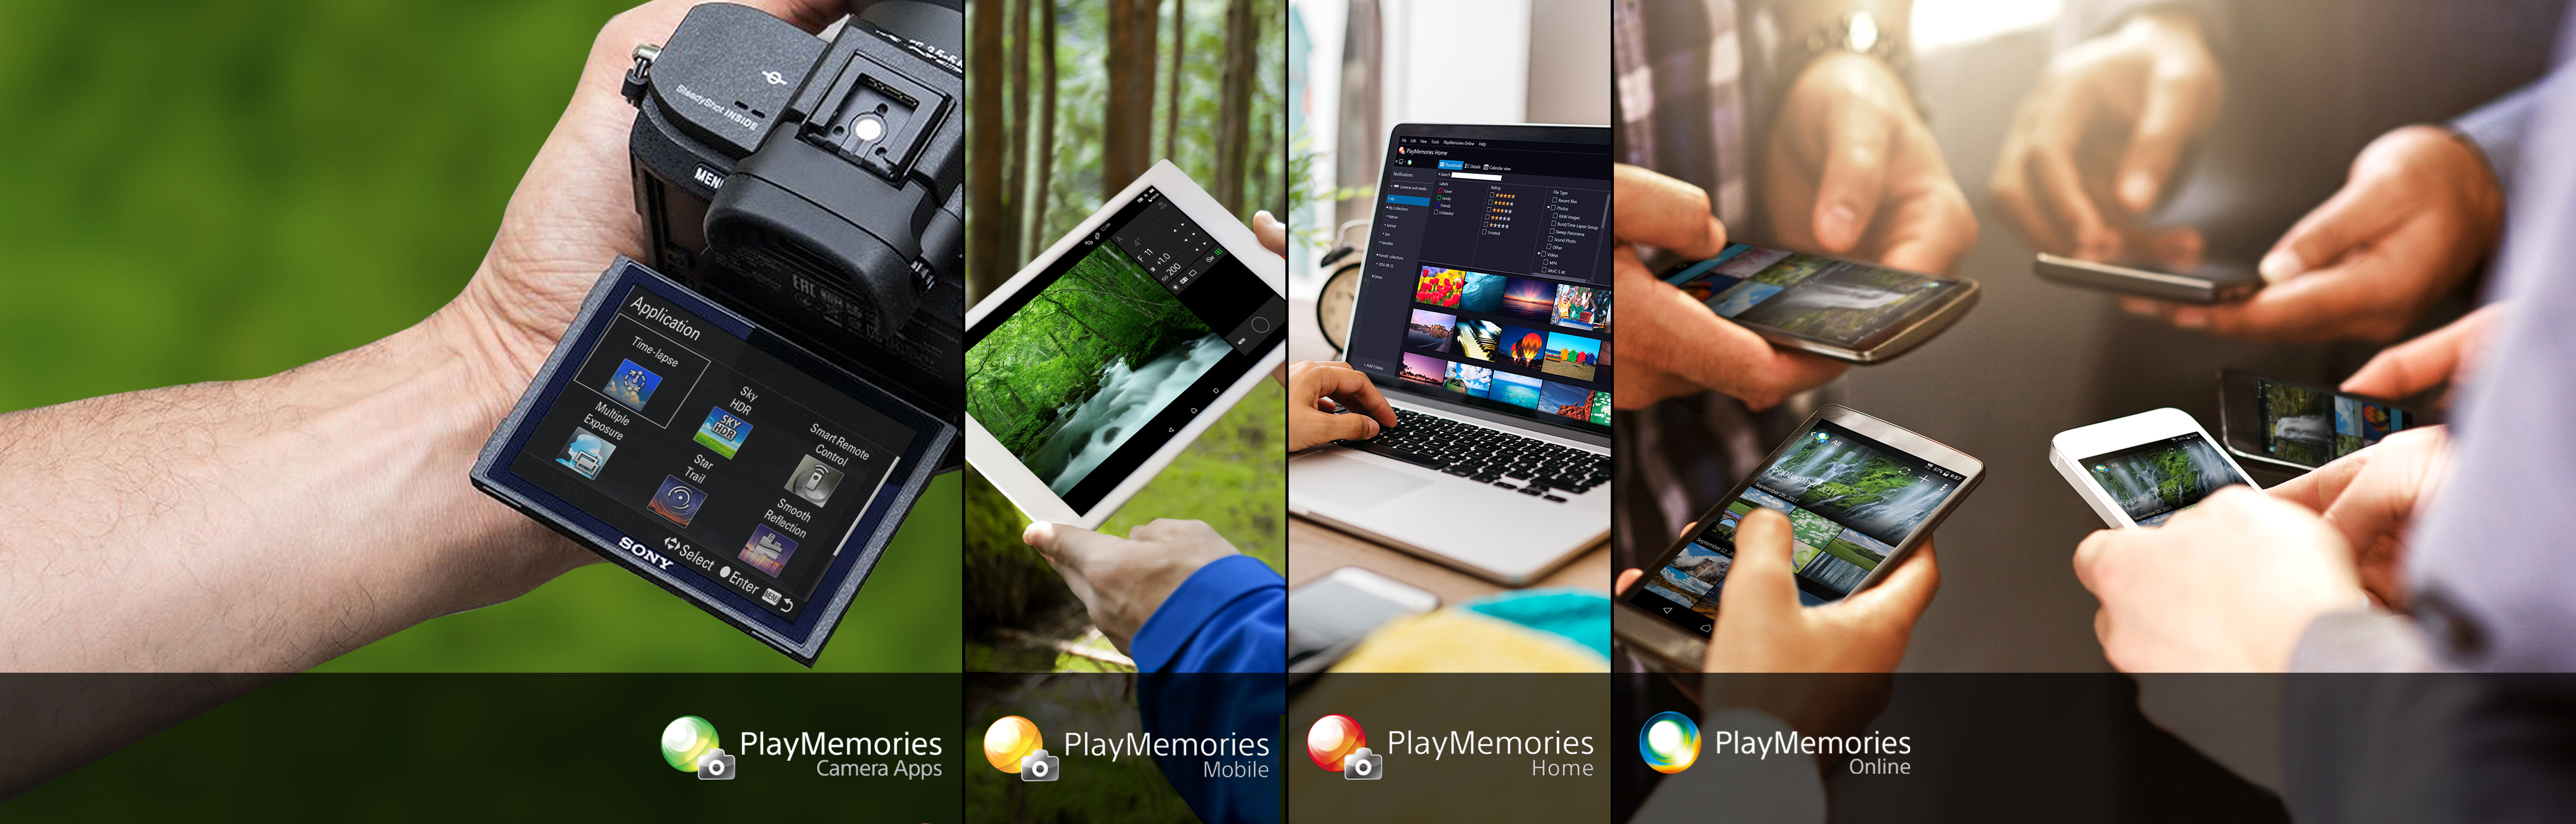 PlayMemories: Camera Apps, Mobile, Home, Online